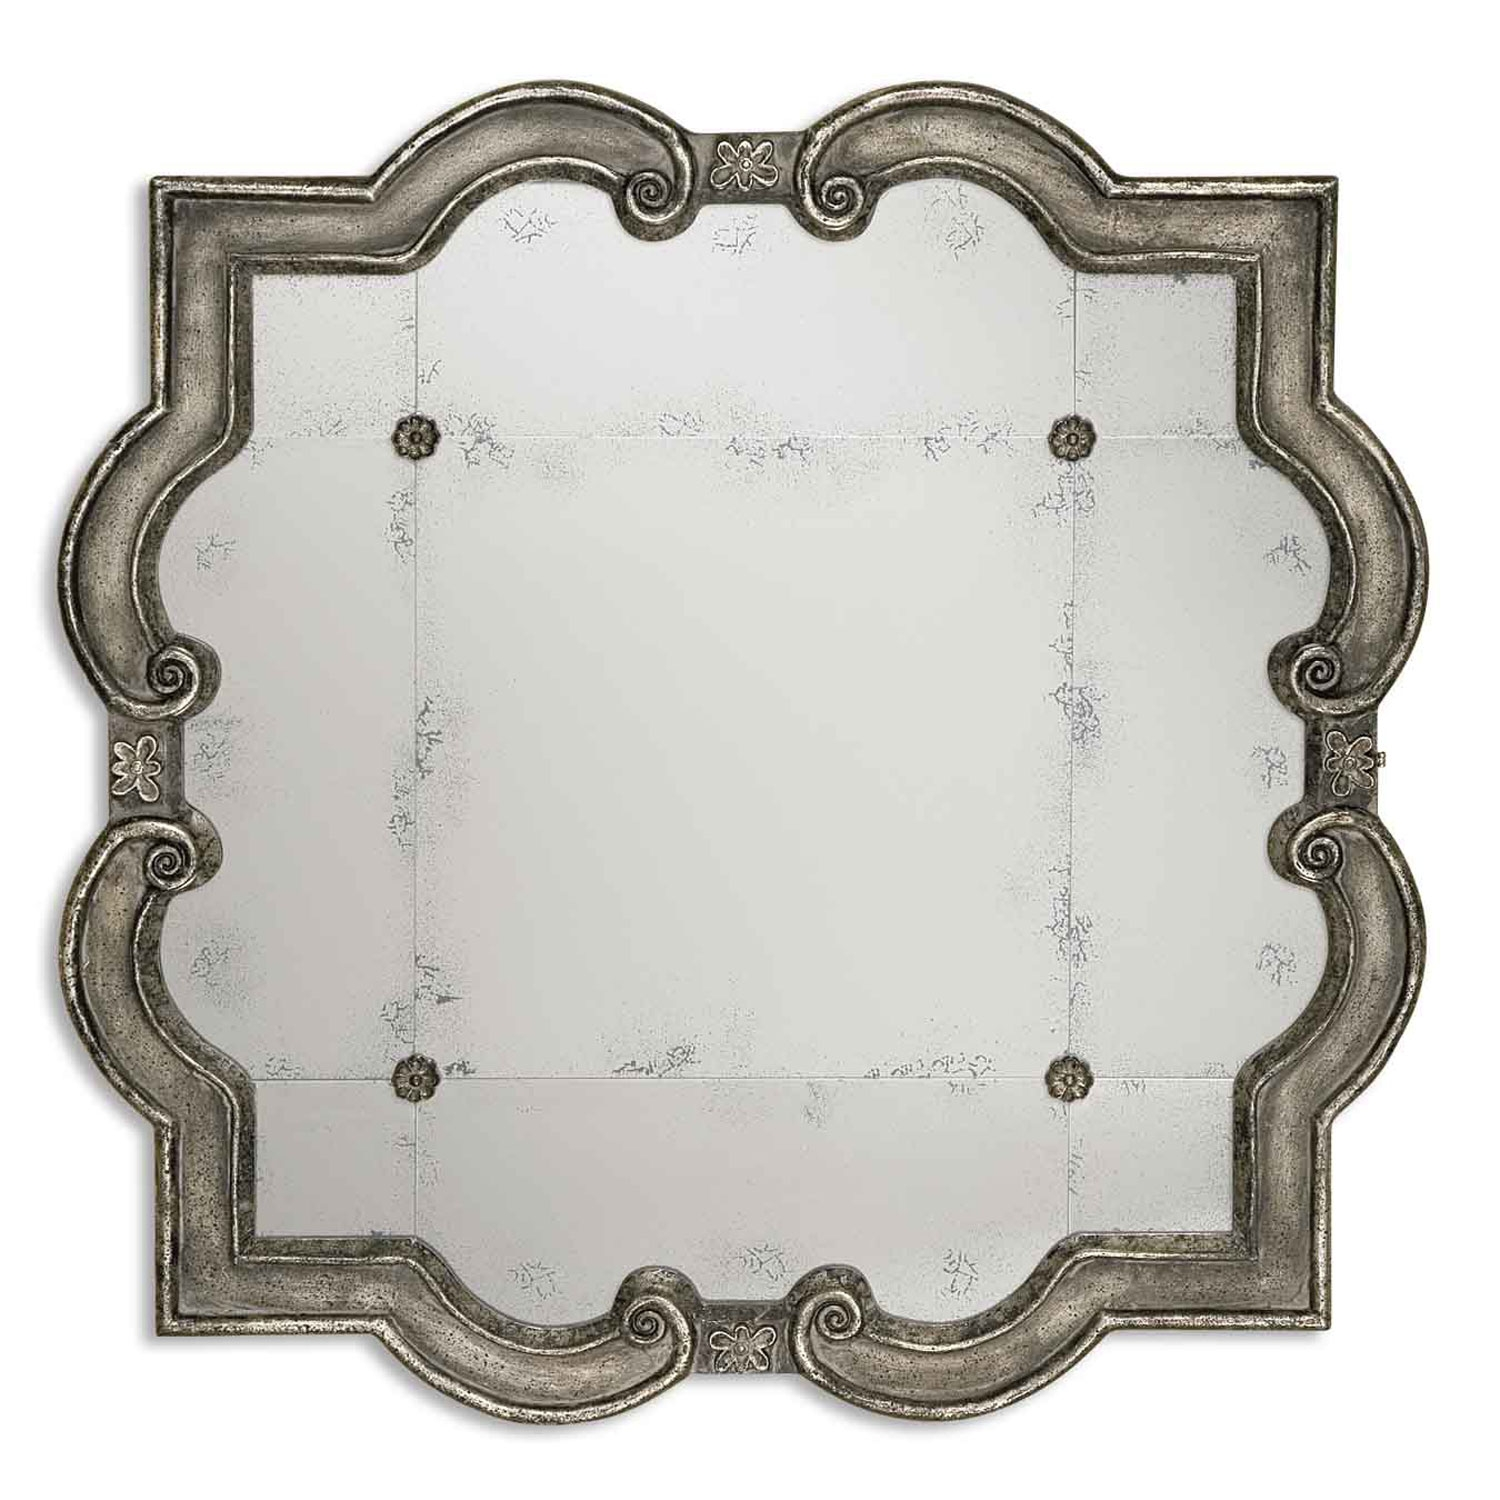 Old World Mirrors Decorative Mirrors Bellacor With Small Ornate Mirrors (Image 7 of 15)